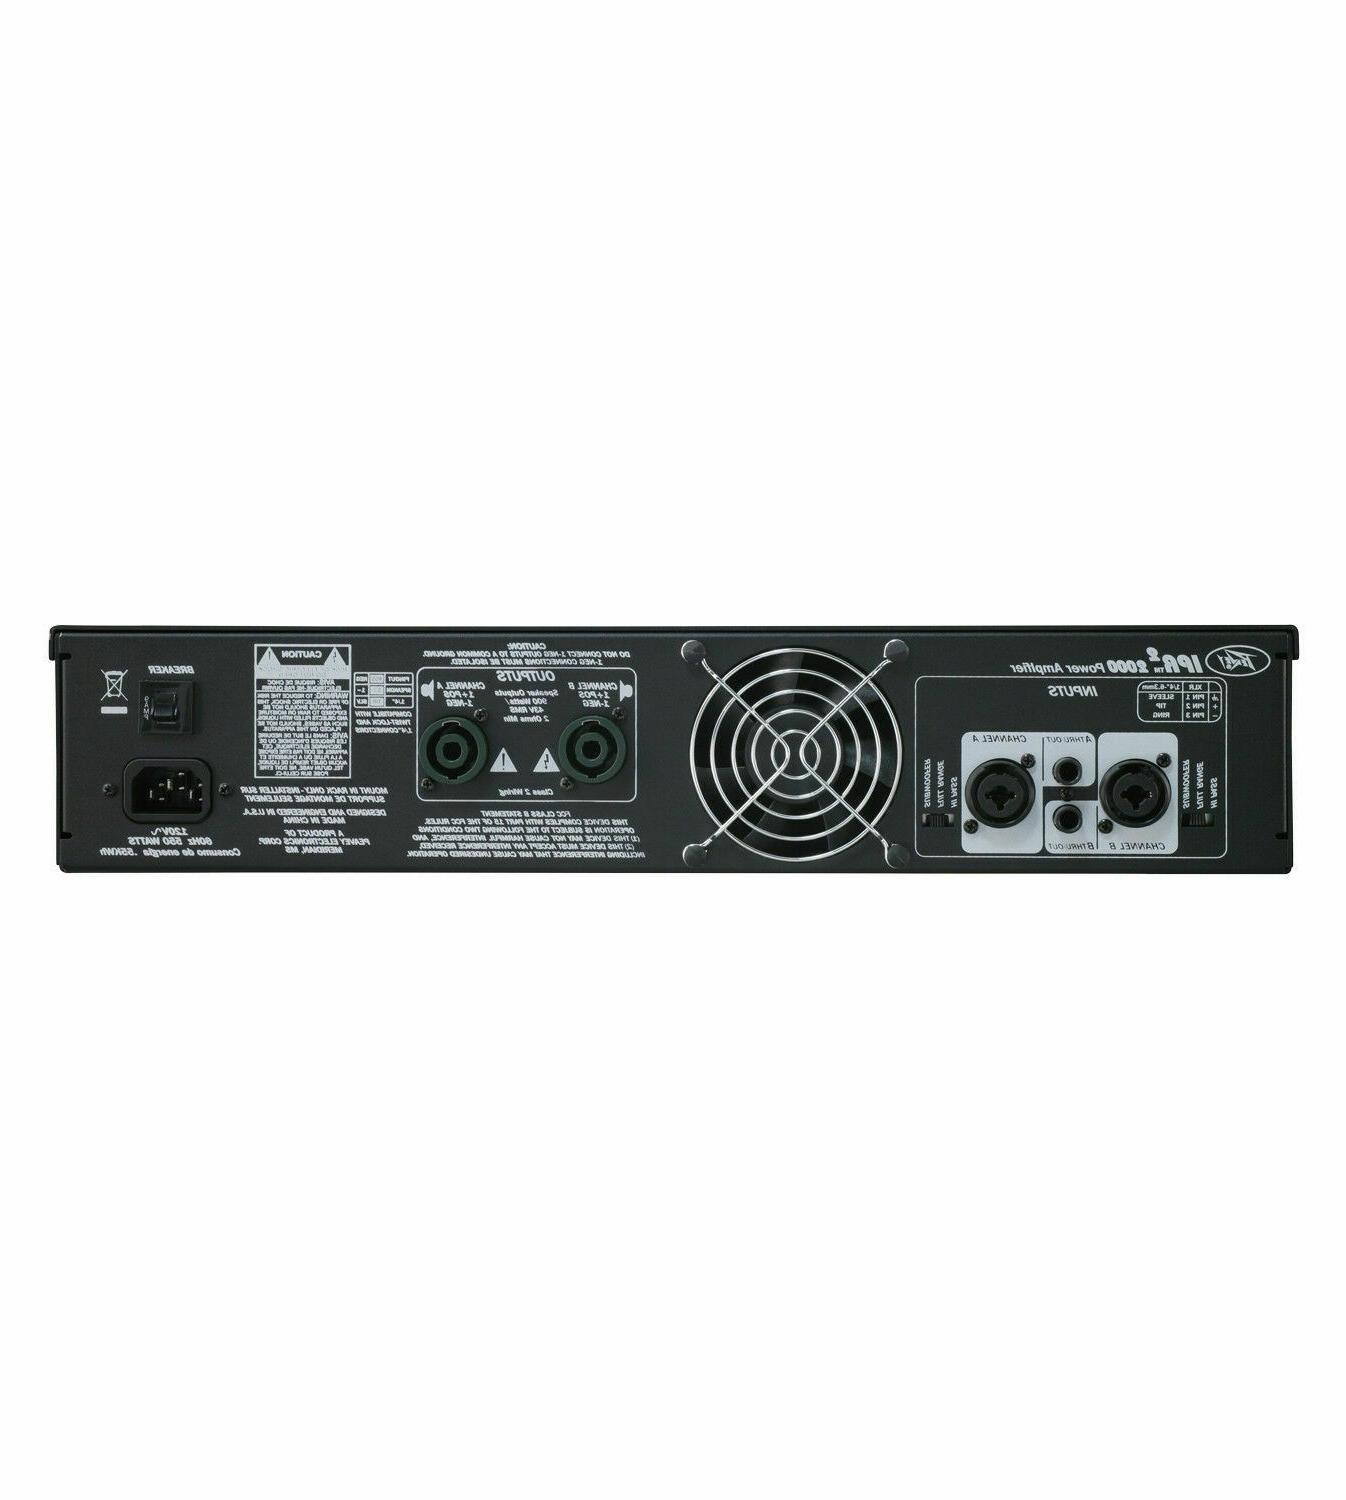 NEW 2200W 2-Channel Class-D Powered Amplifier for